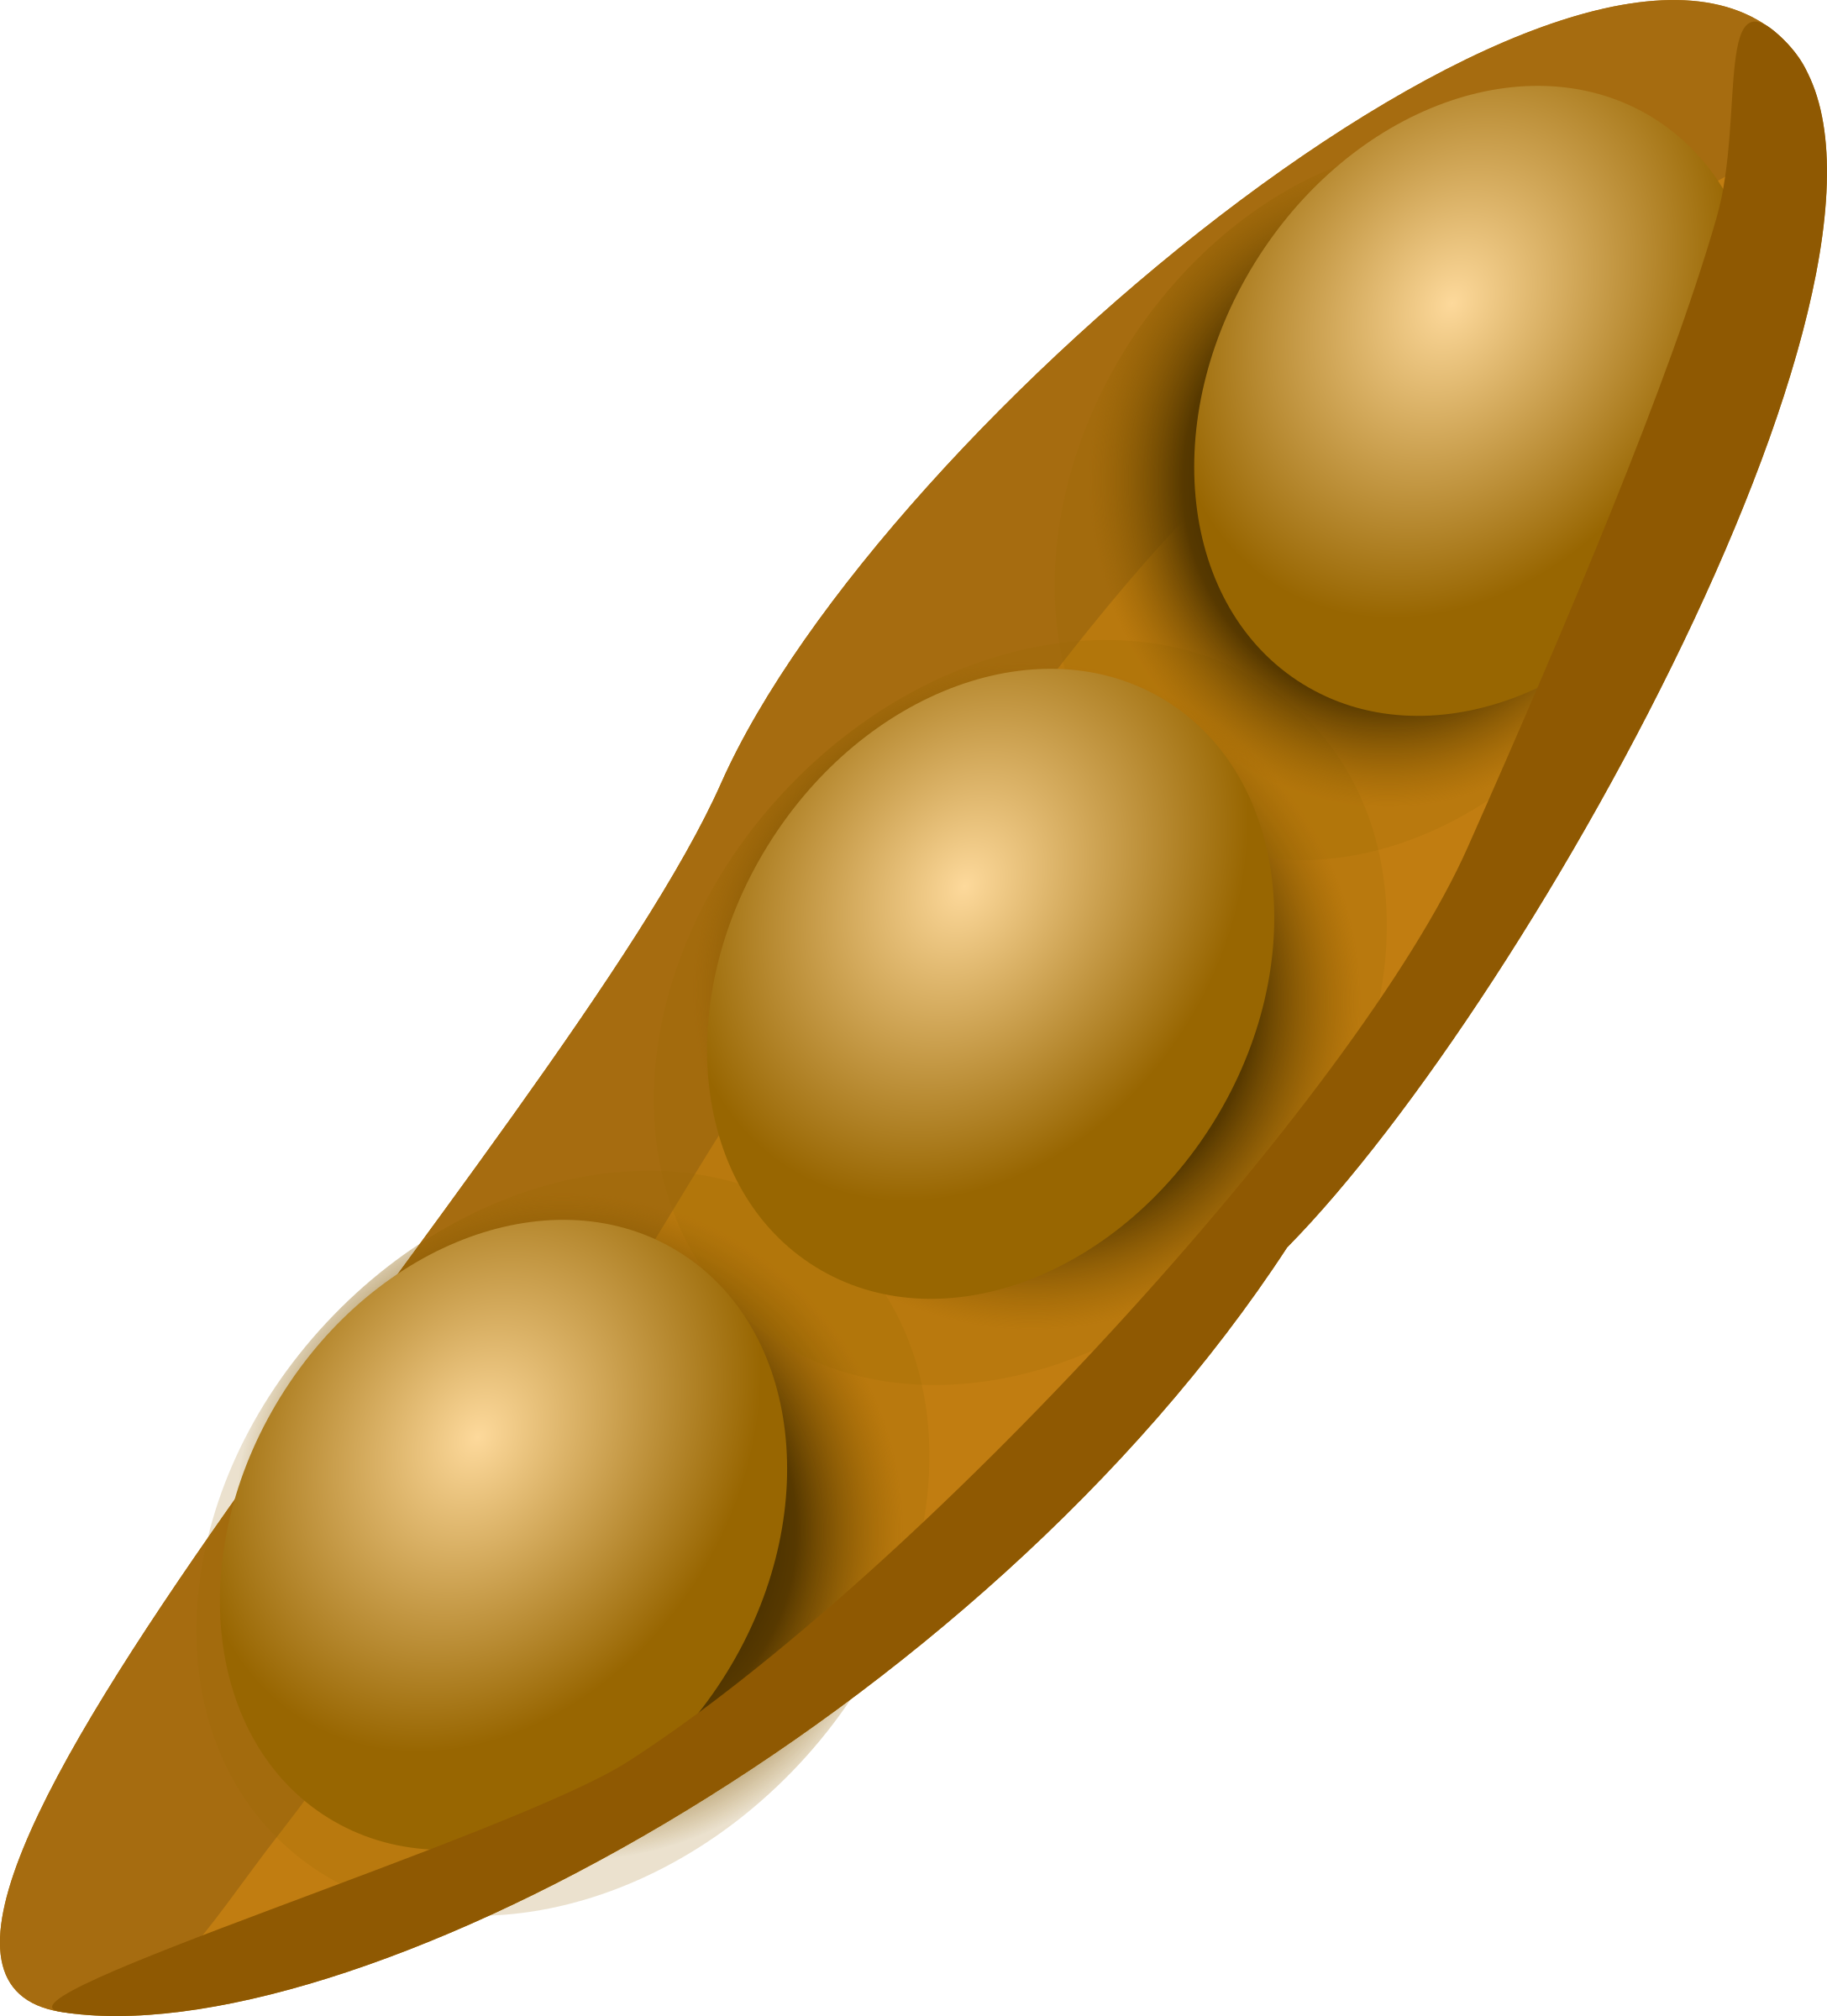 Big image png. Beans clipart soybean